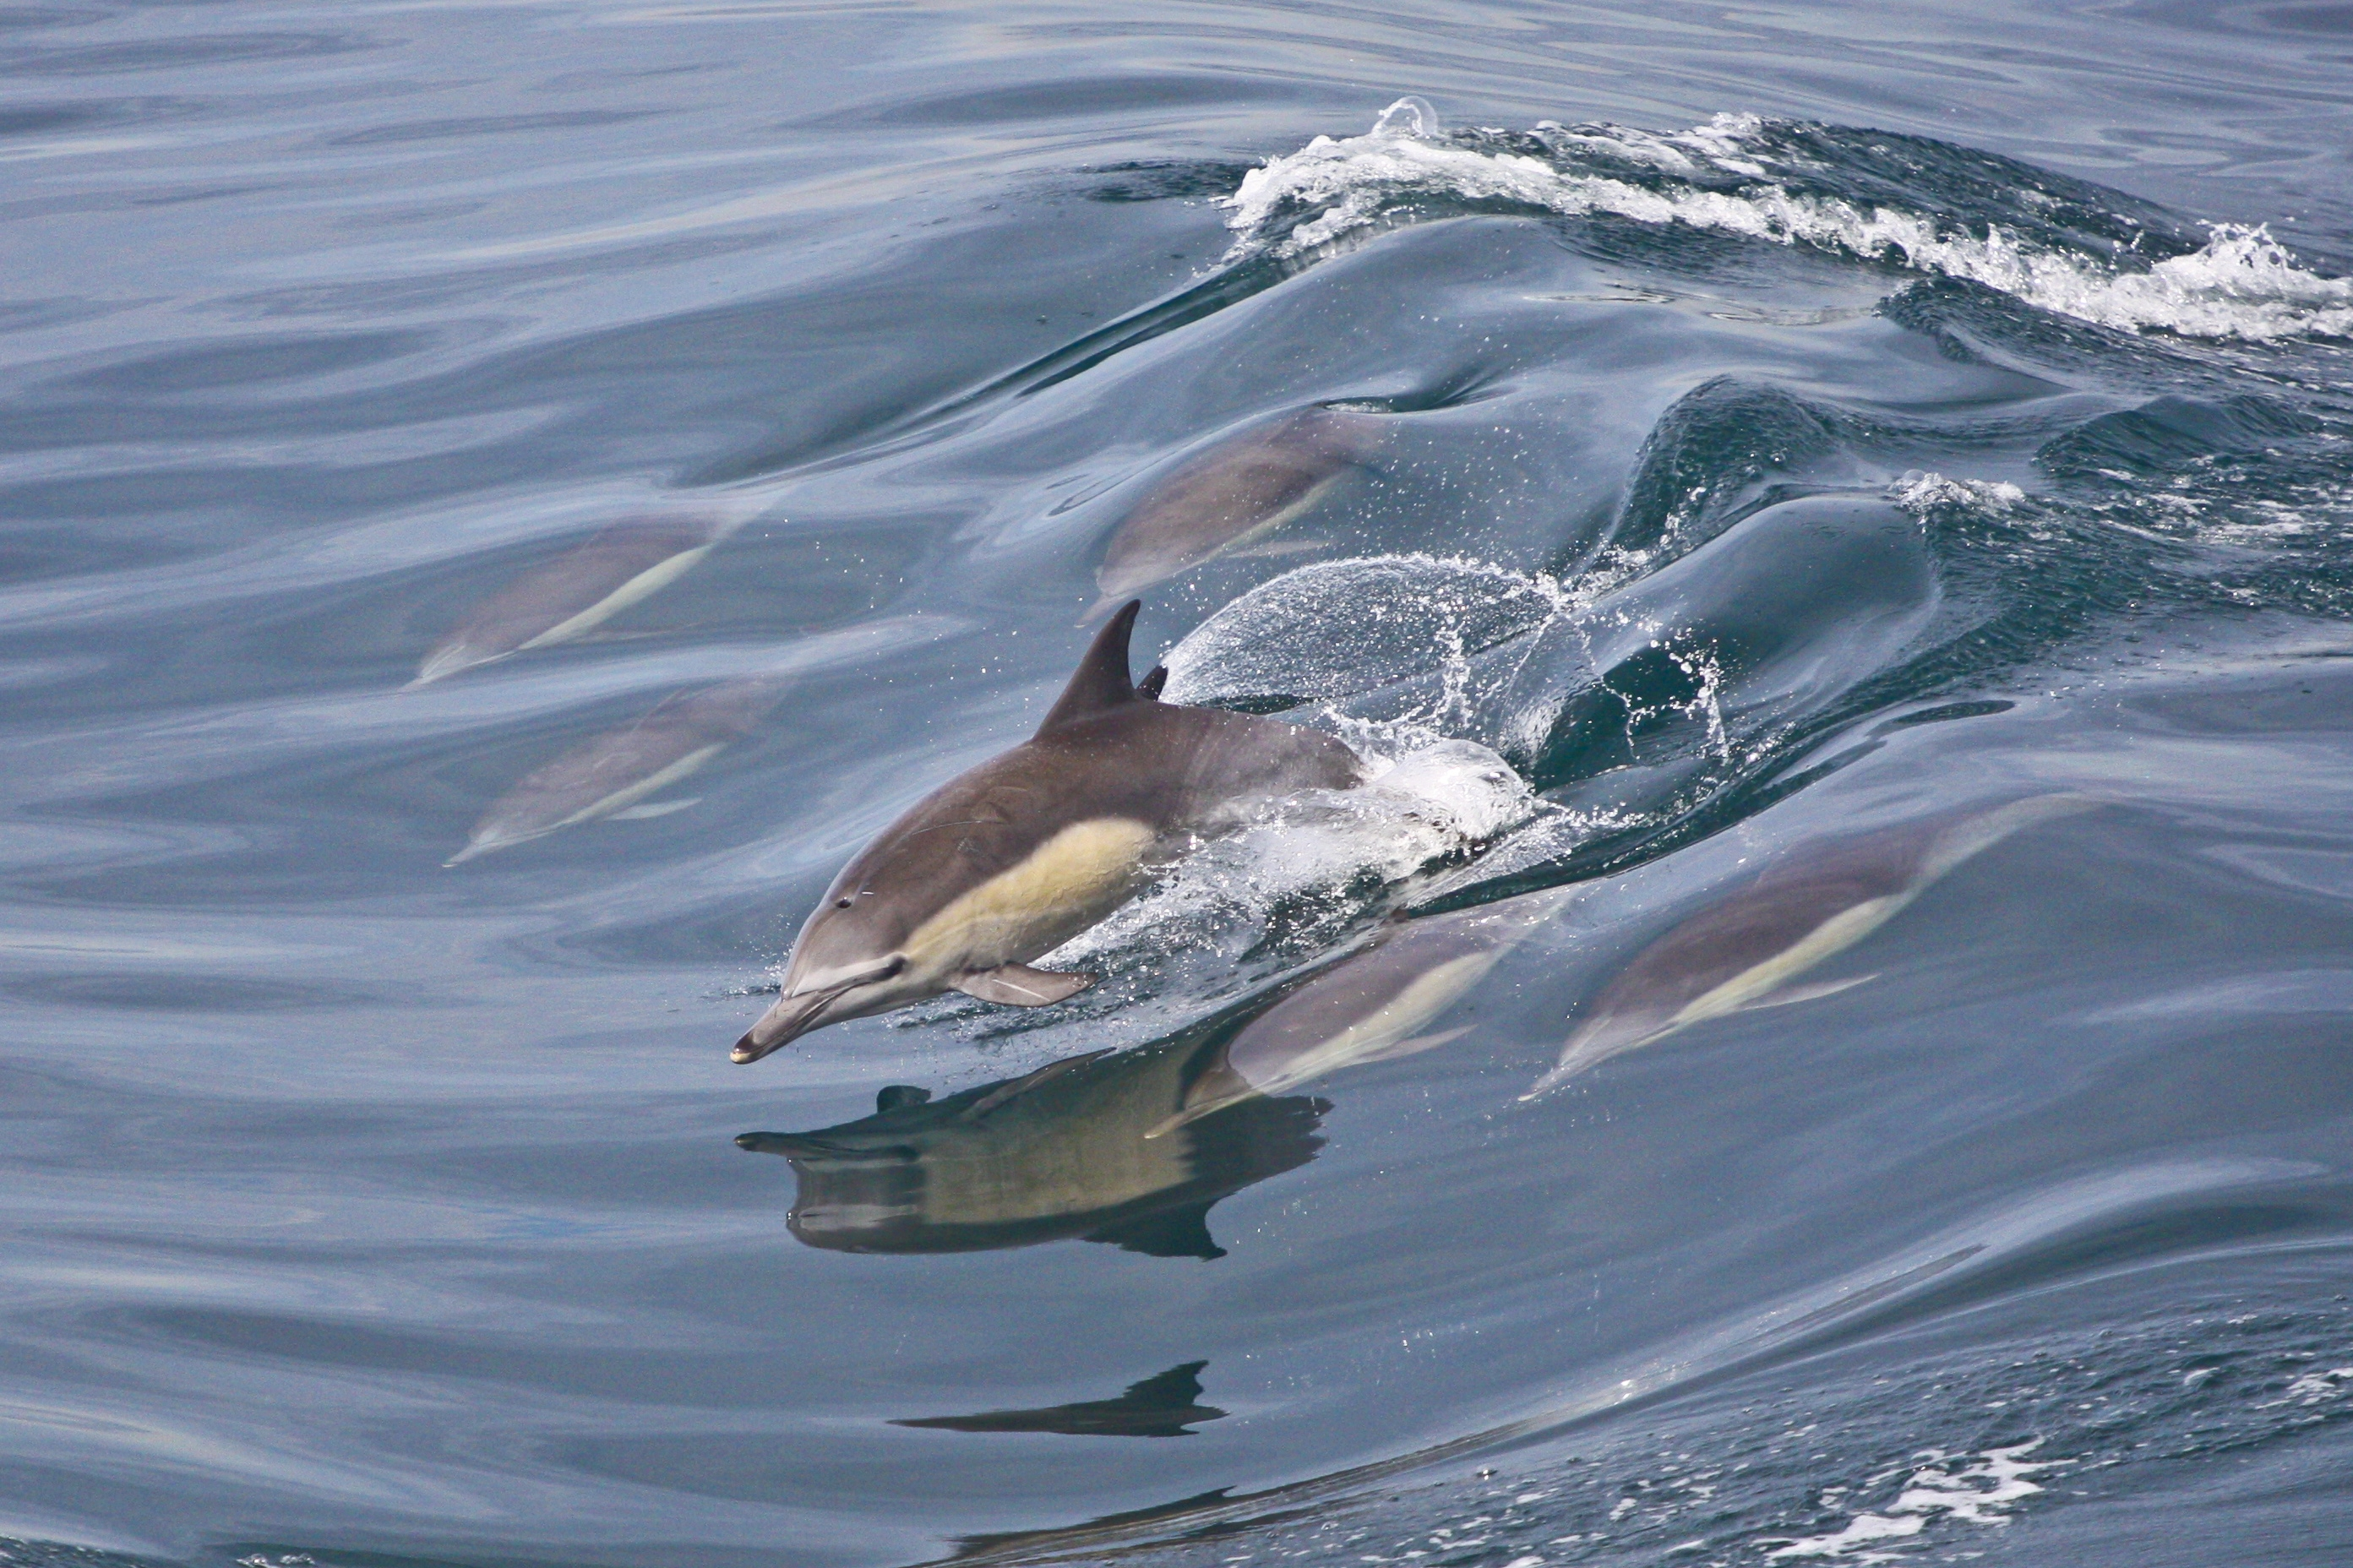 Dolphins leap in and out of the water, allowing them to swim with greater efficiency.